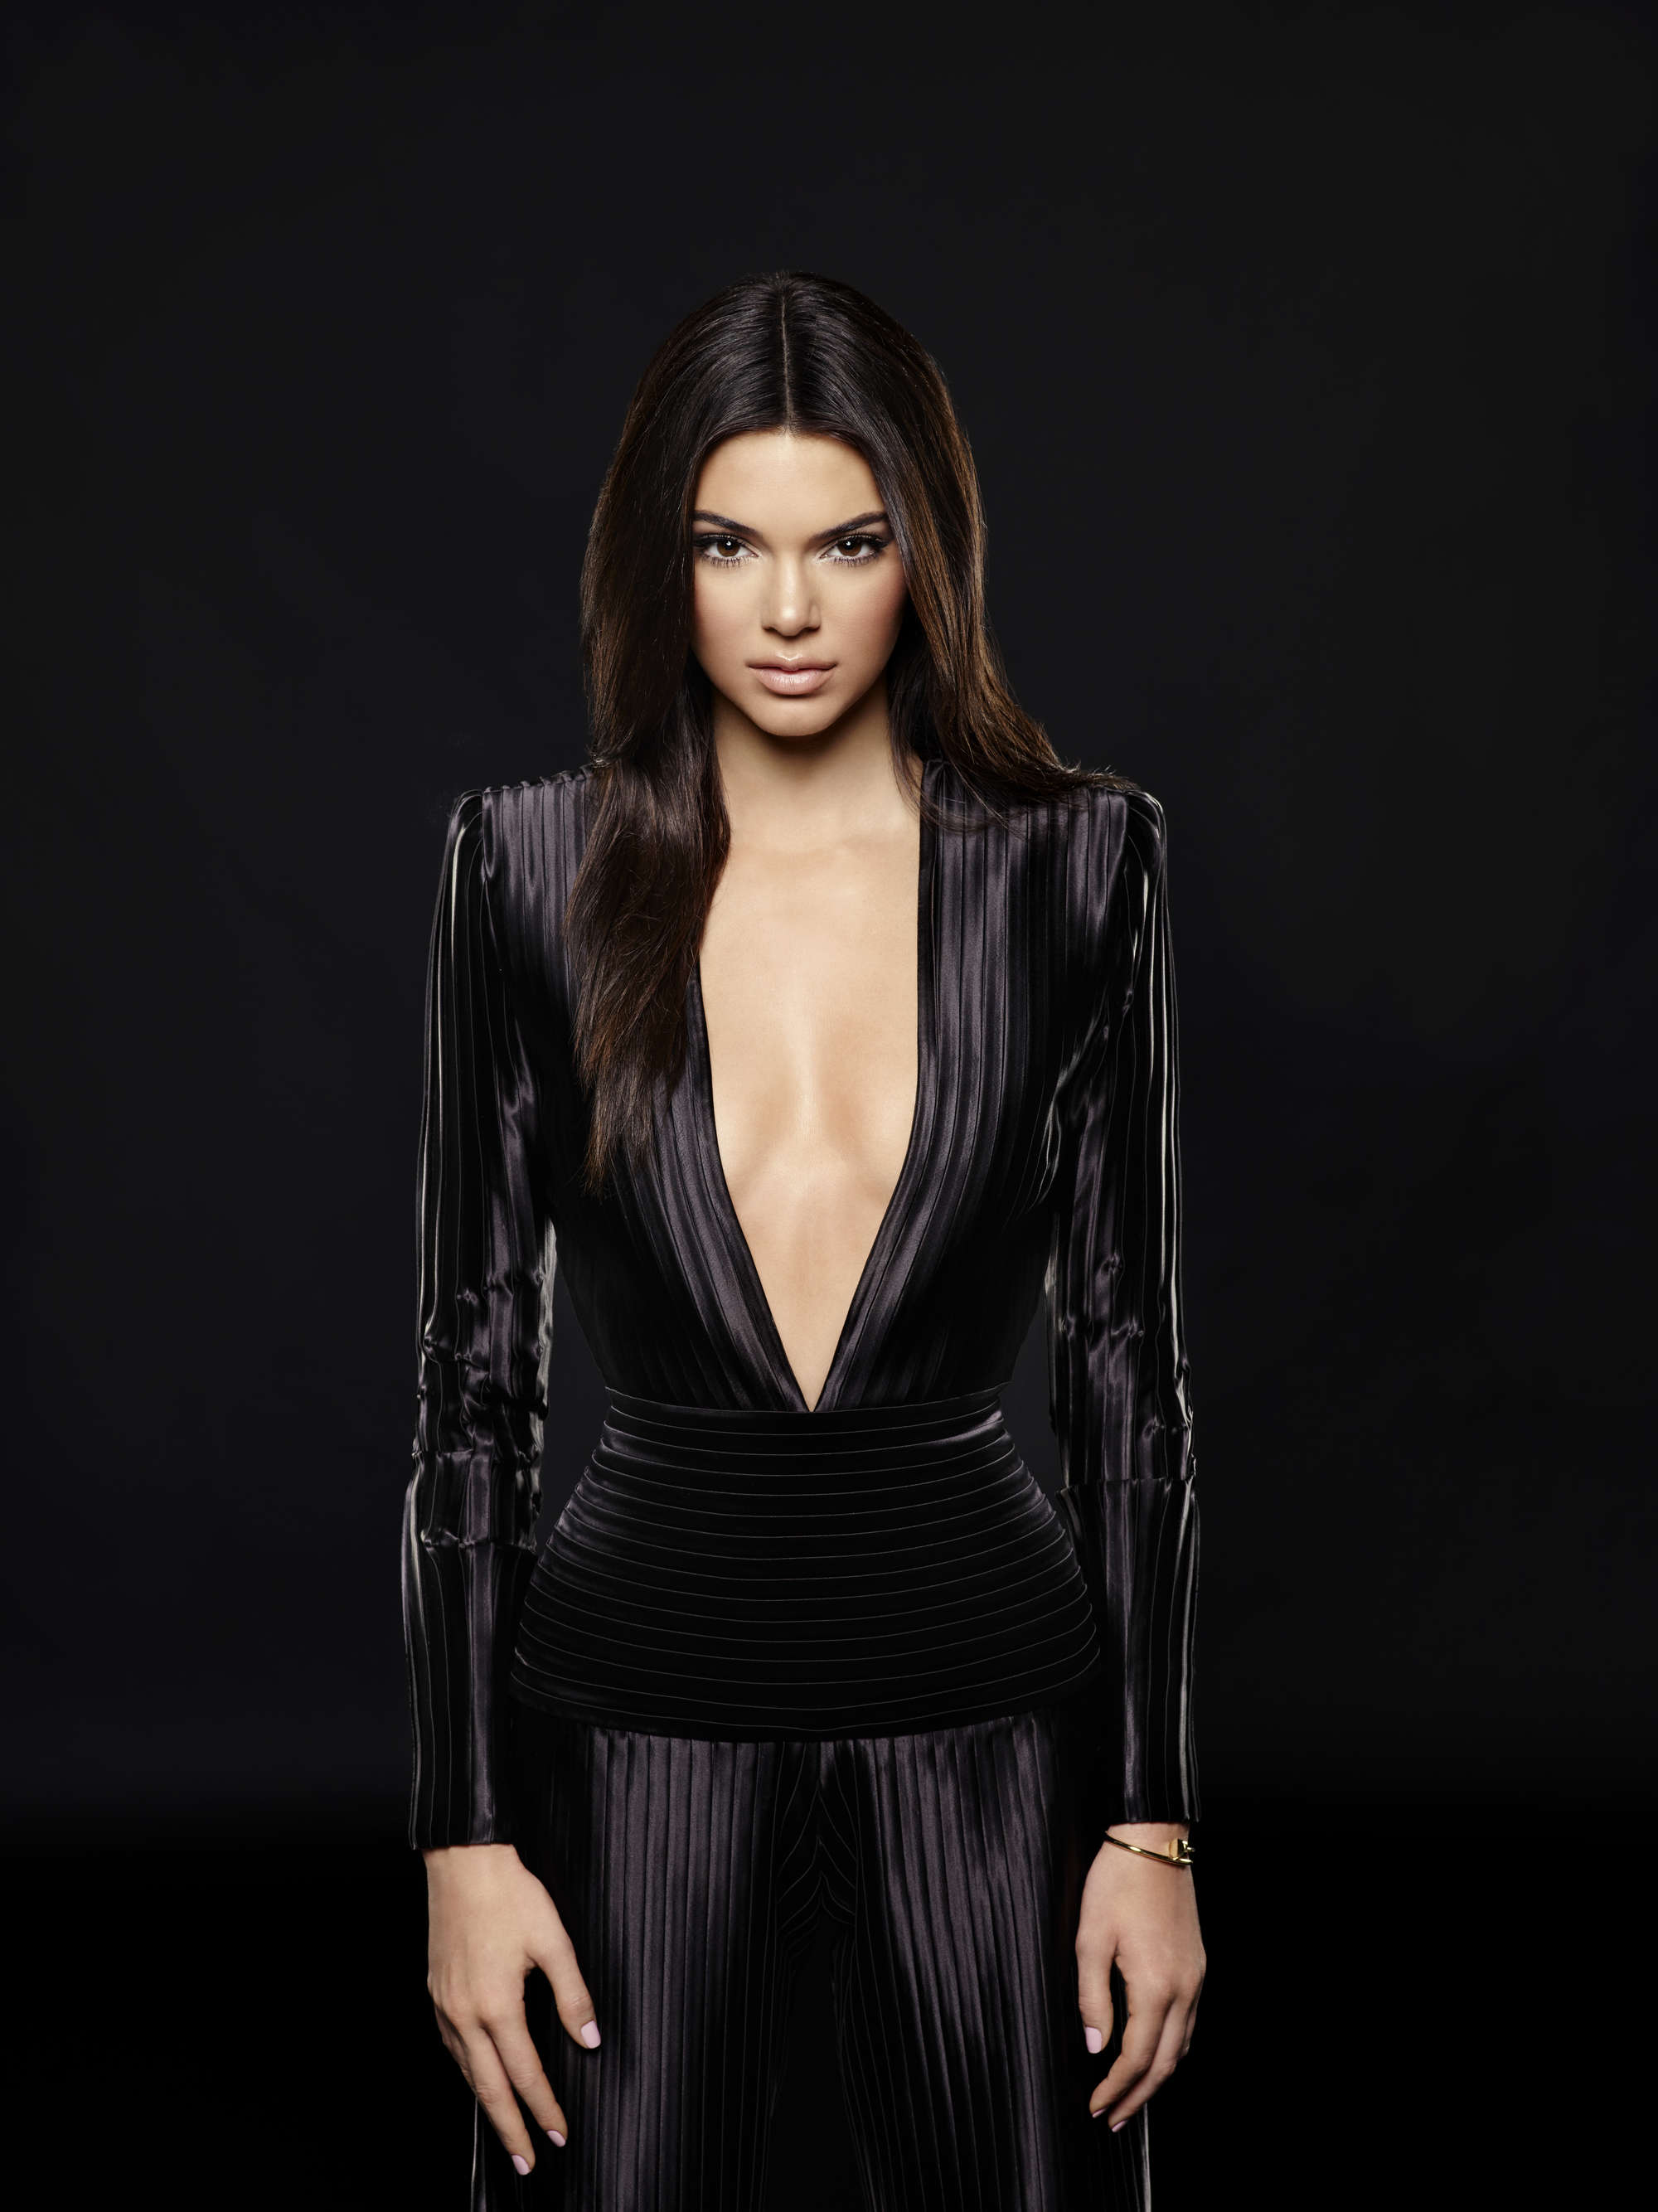 kendall jenner nude - photo #21